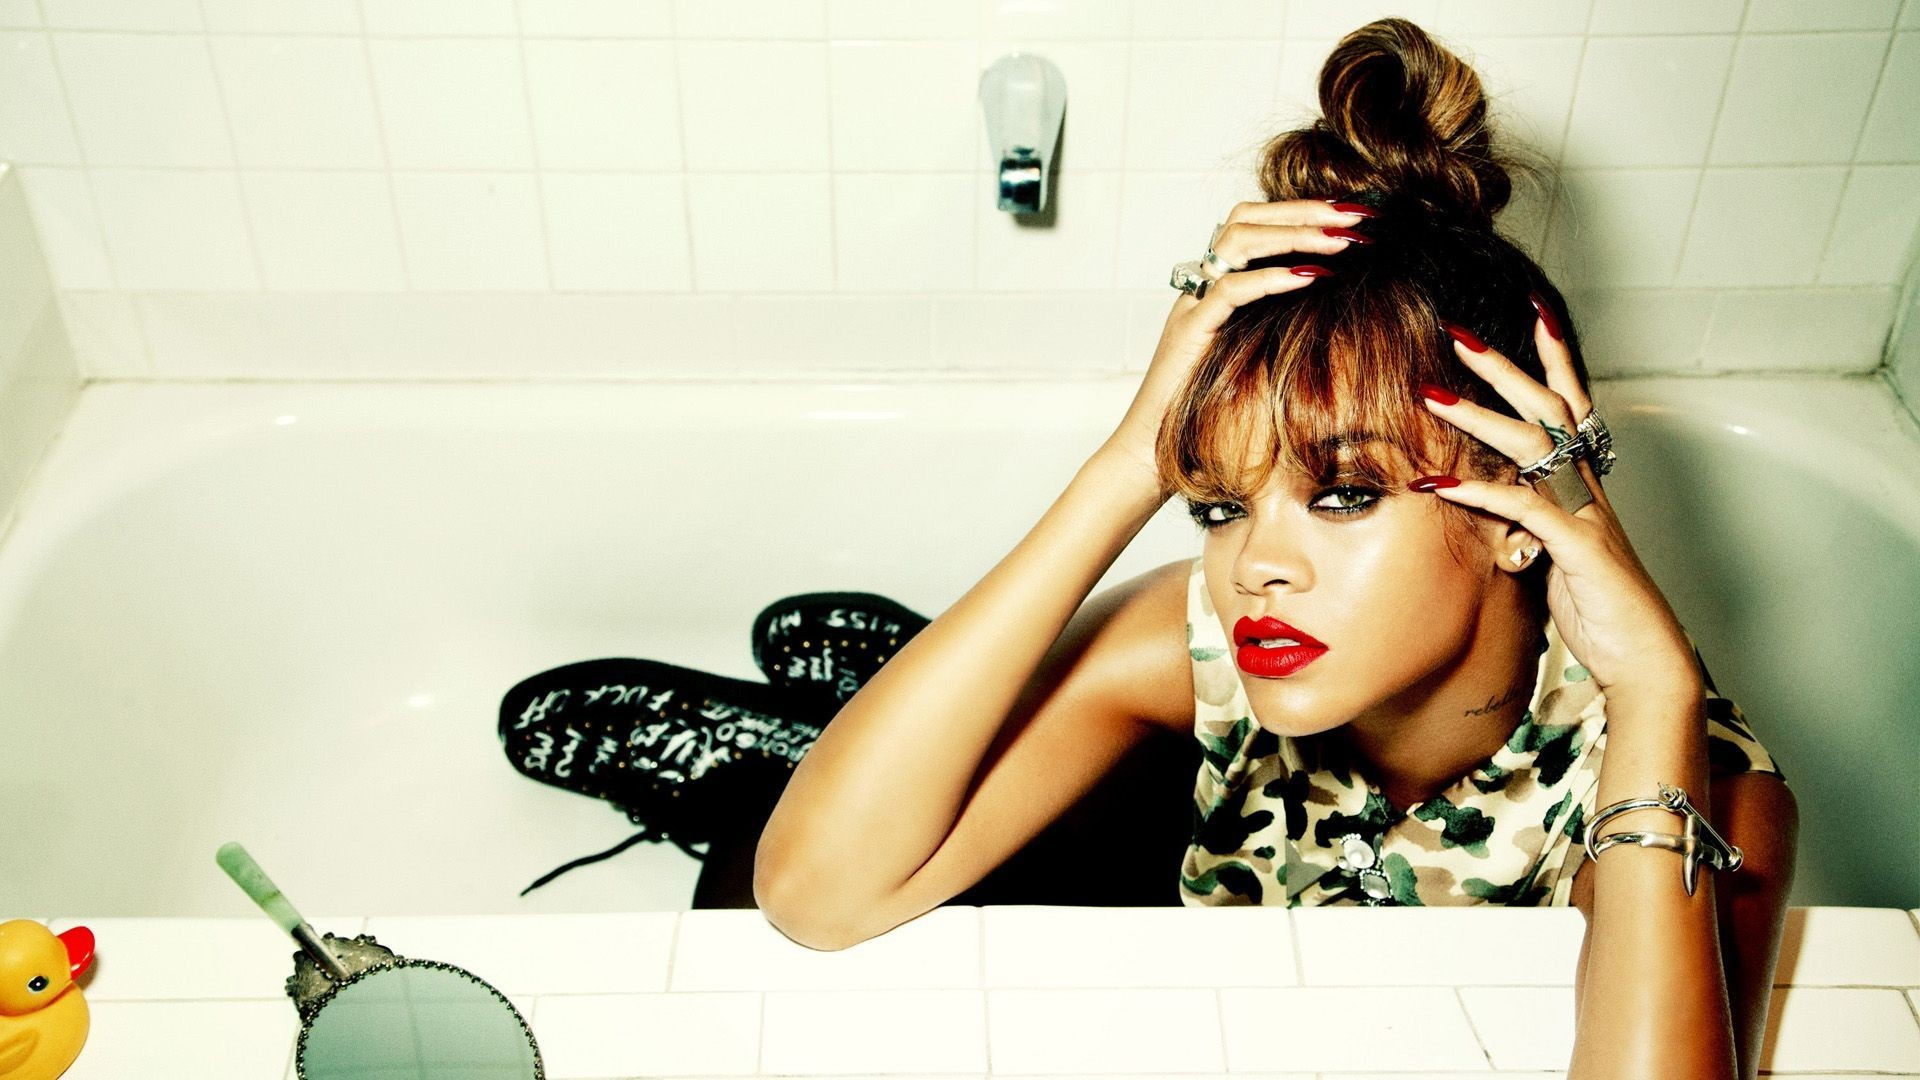 Rihanna wallpaper Download free awesome HD wallpapers of